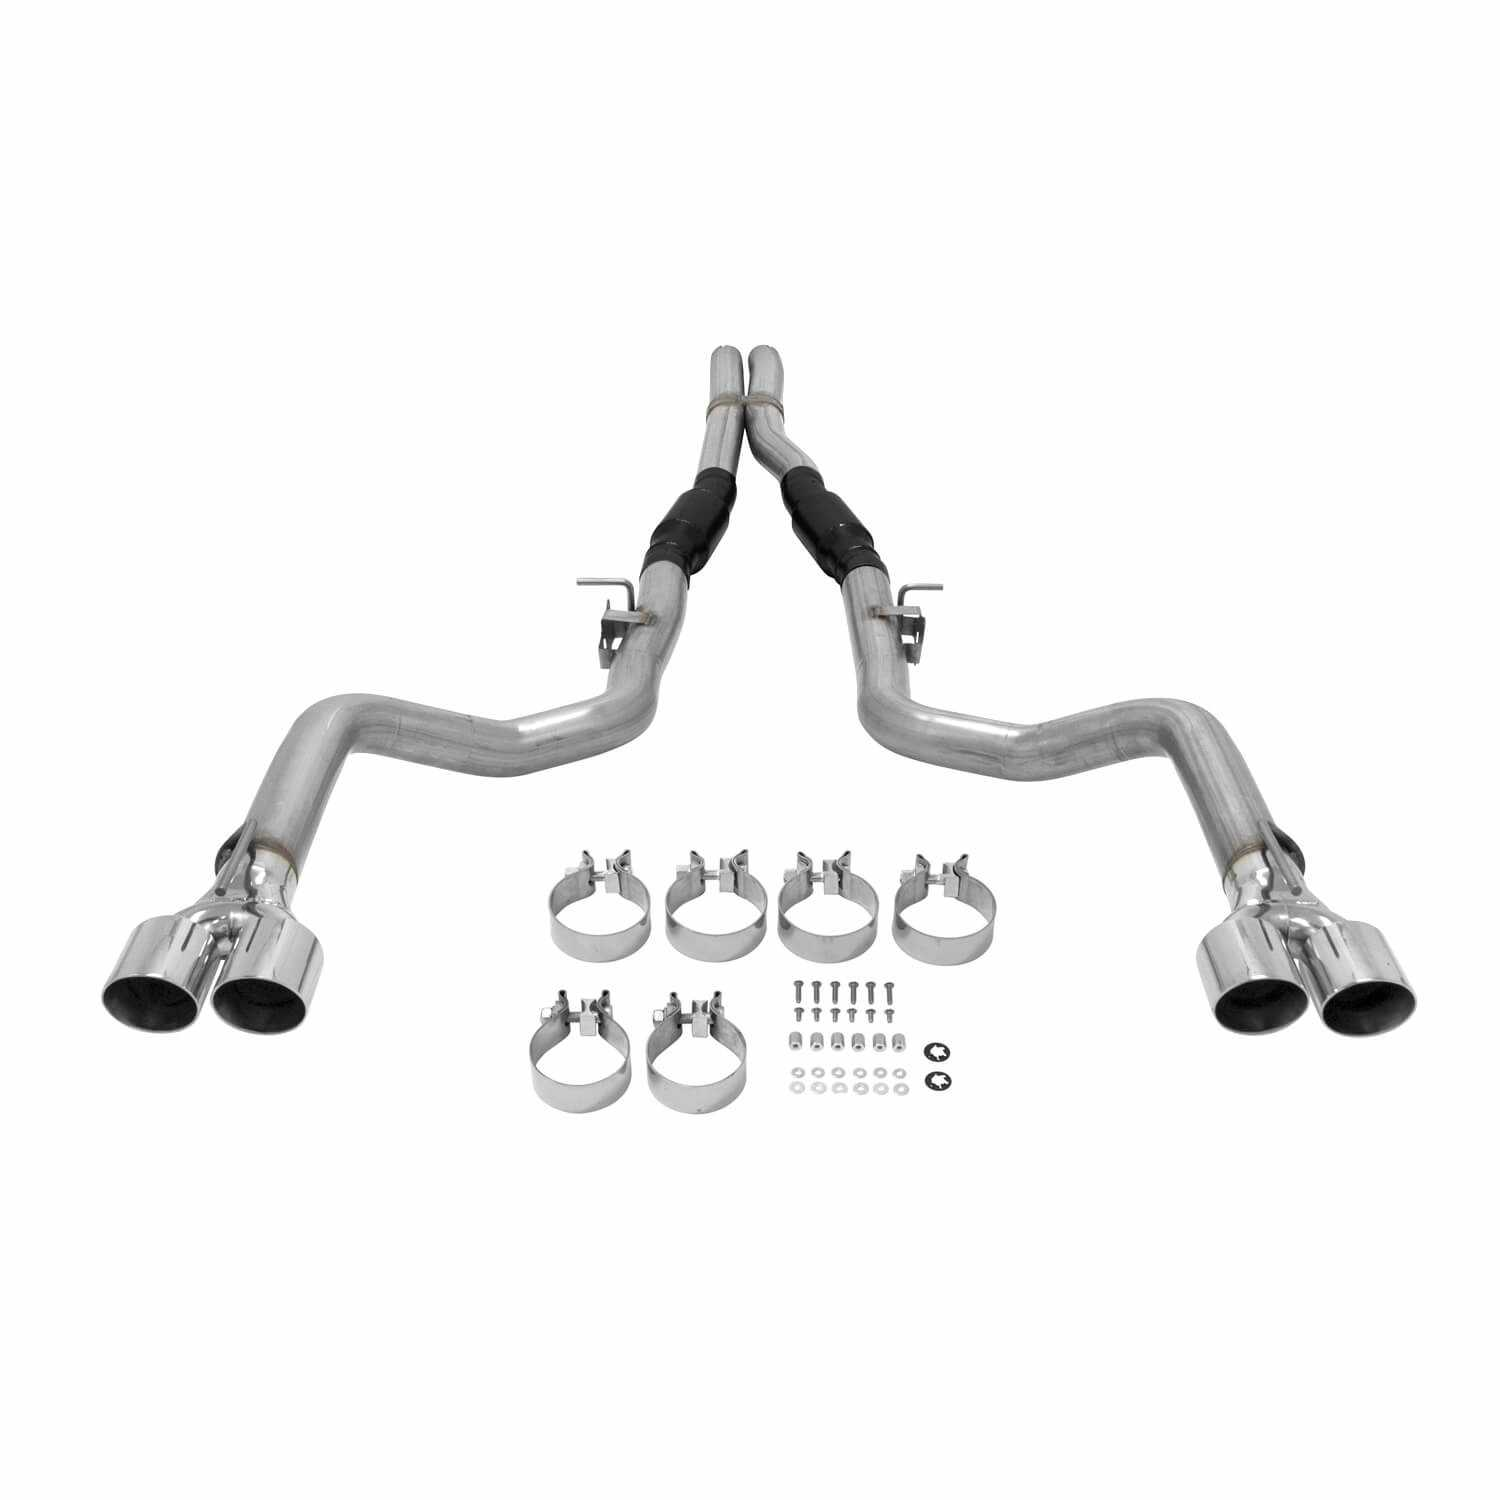 817740 Flowmaster Outlaw Series™ Cat Back Exhaust System